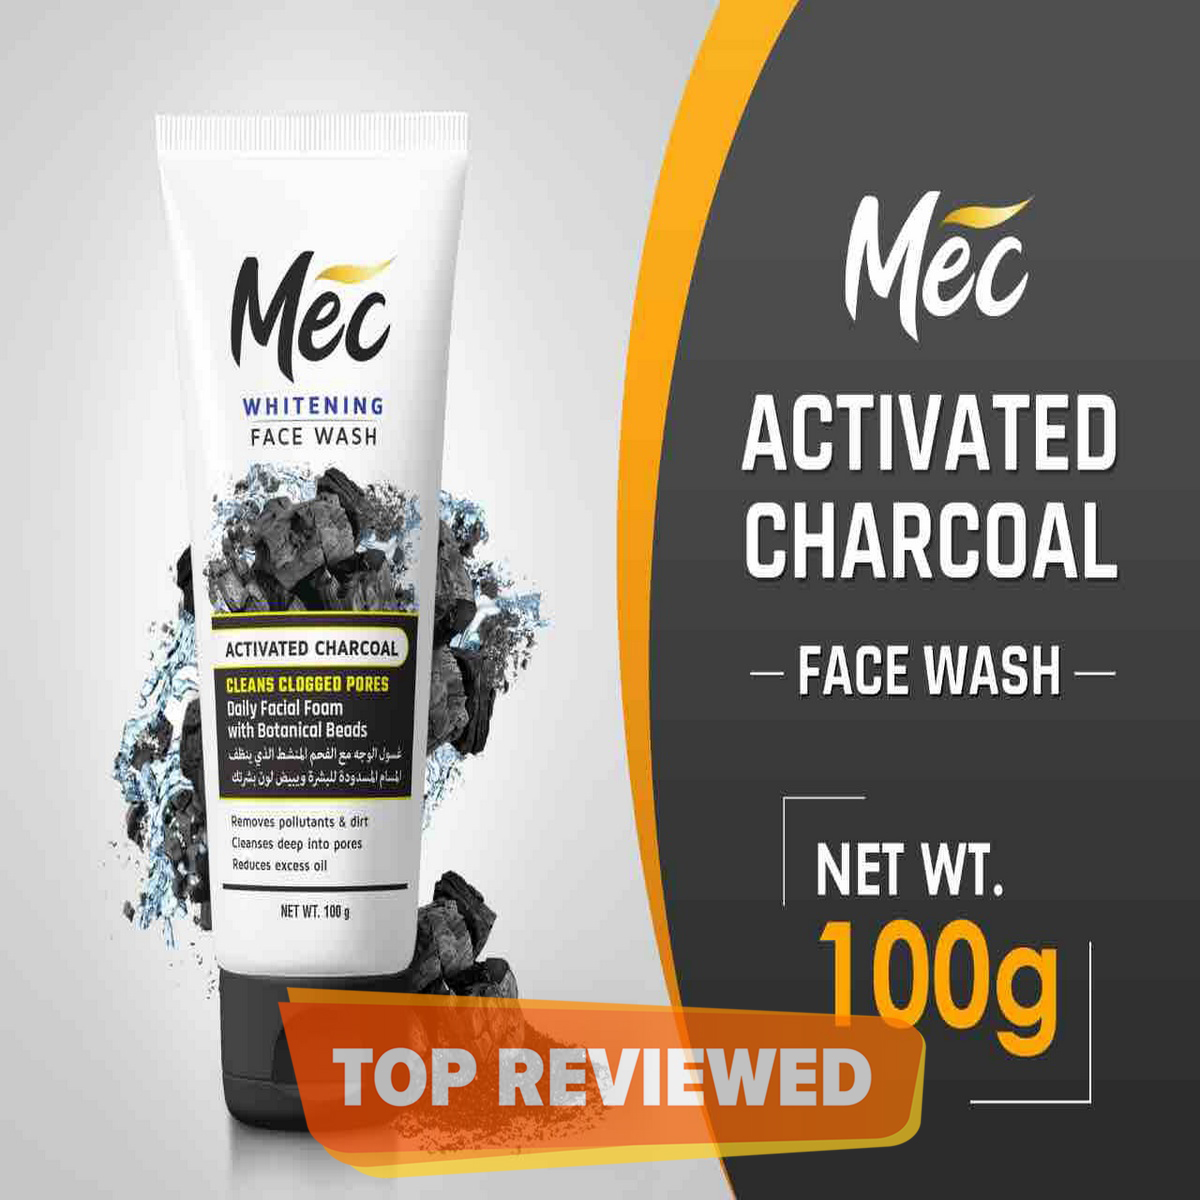 Mec Whitening Activated Charcoal Face Wash